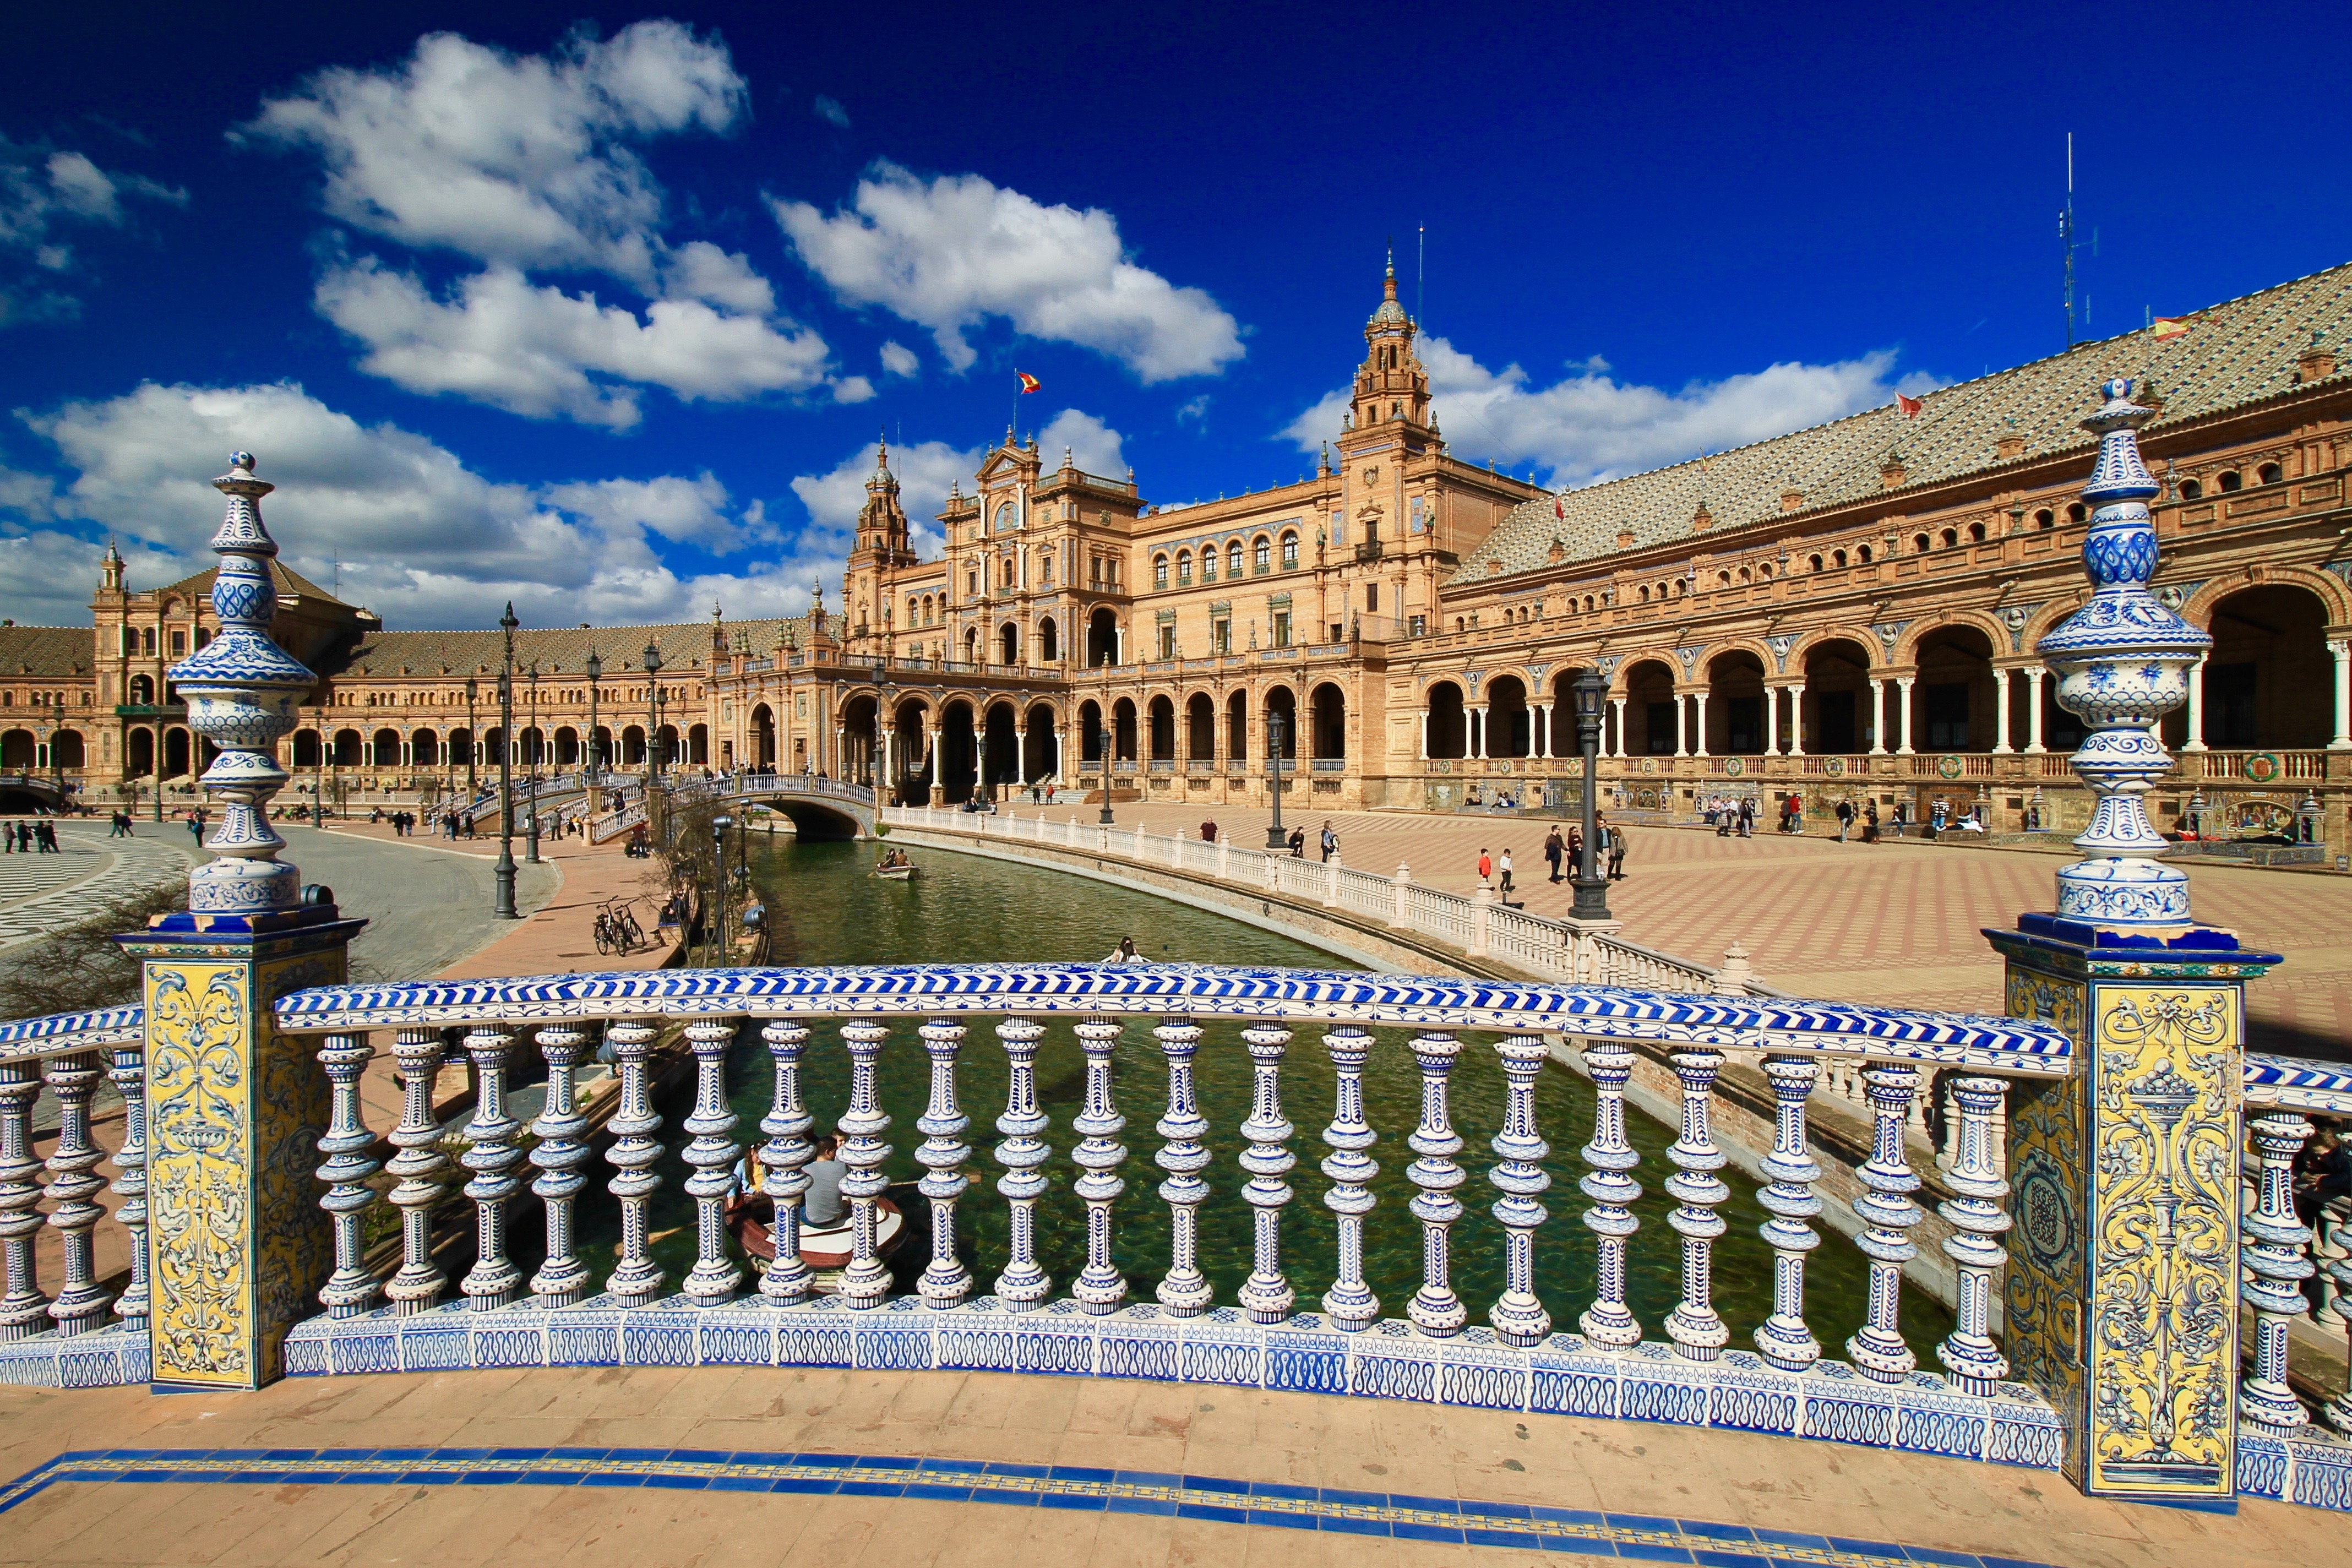 Plaza de Espana, Seville, Andalusia, Southern Spain